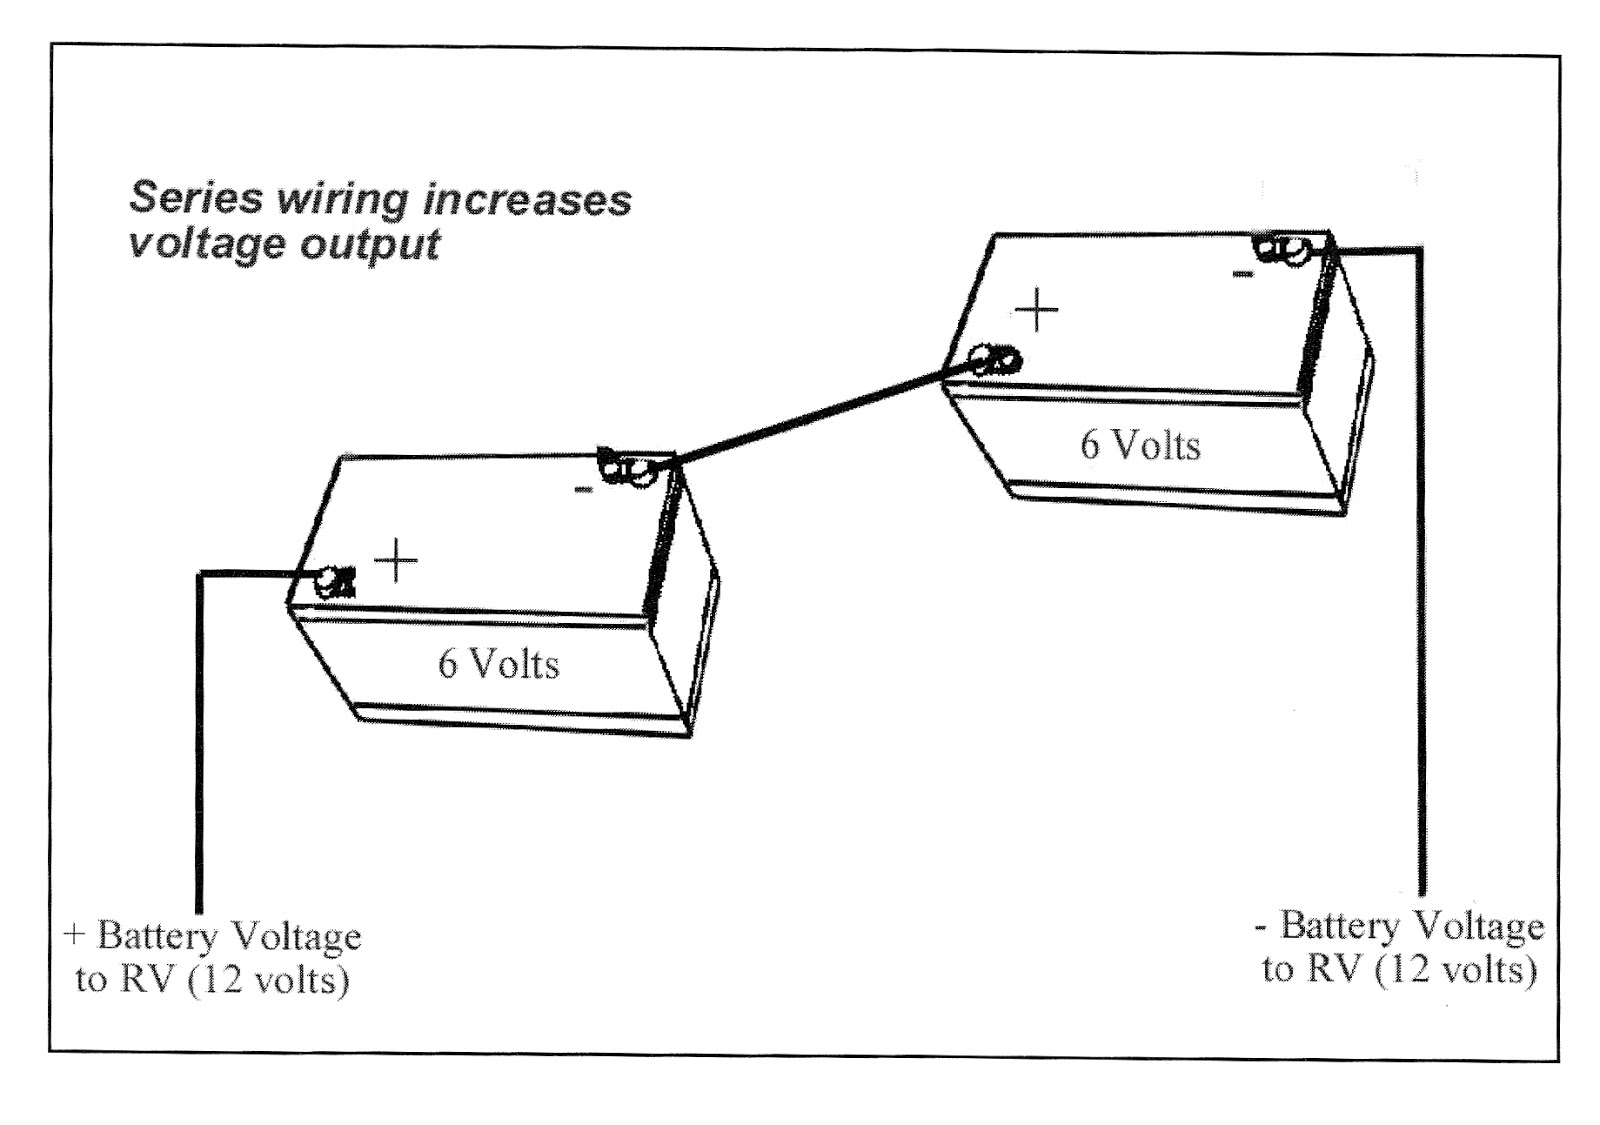 battery+series+wiring+diagram penny's tuppence (2 cents in brit) rv transmission 12v to 6v  at n-0.co